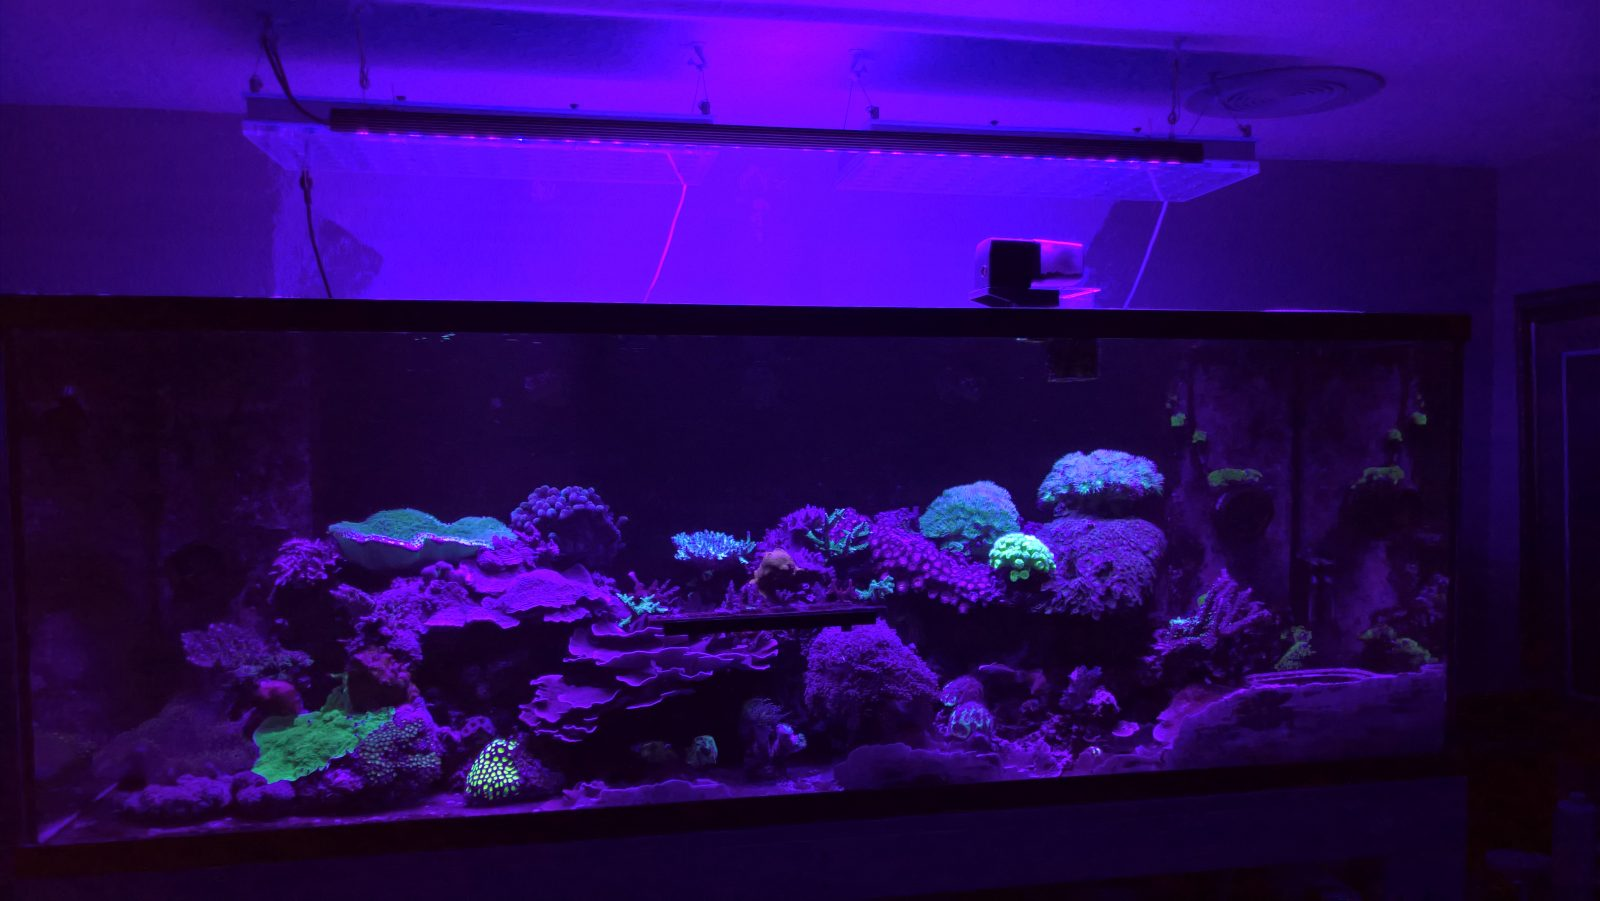 Aquarium_LED_light_violet_Purple_紫外線